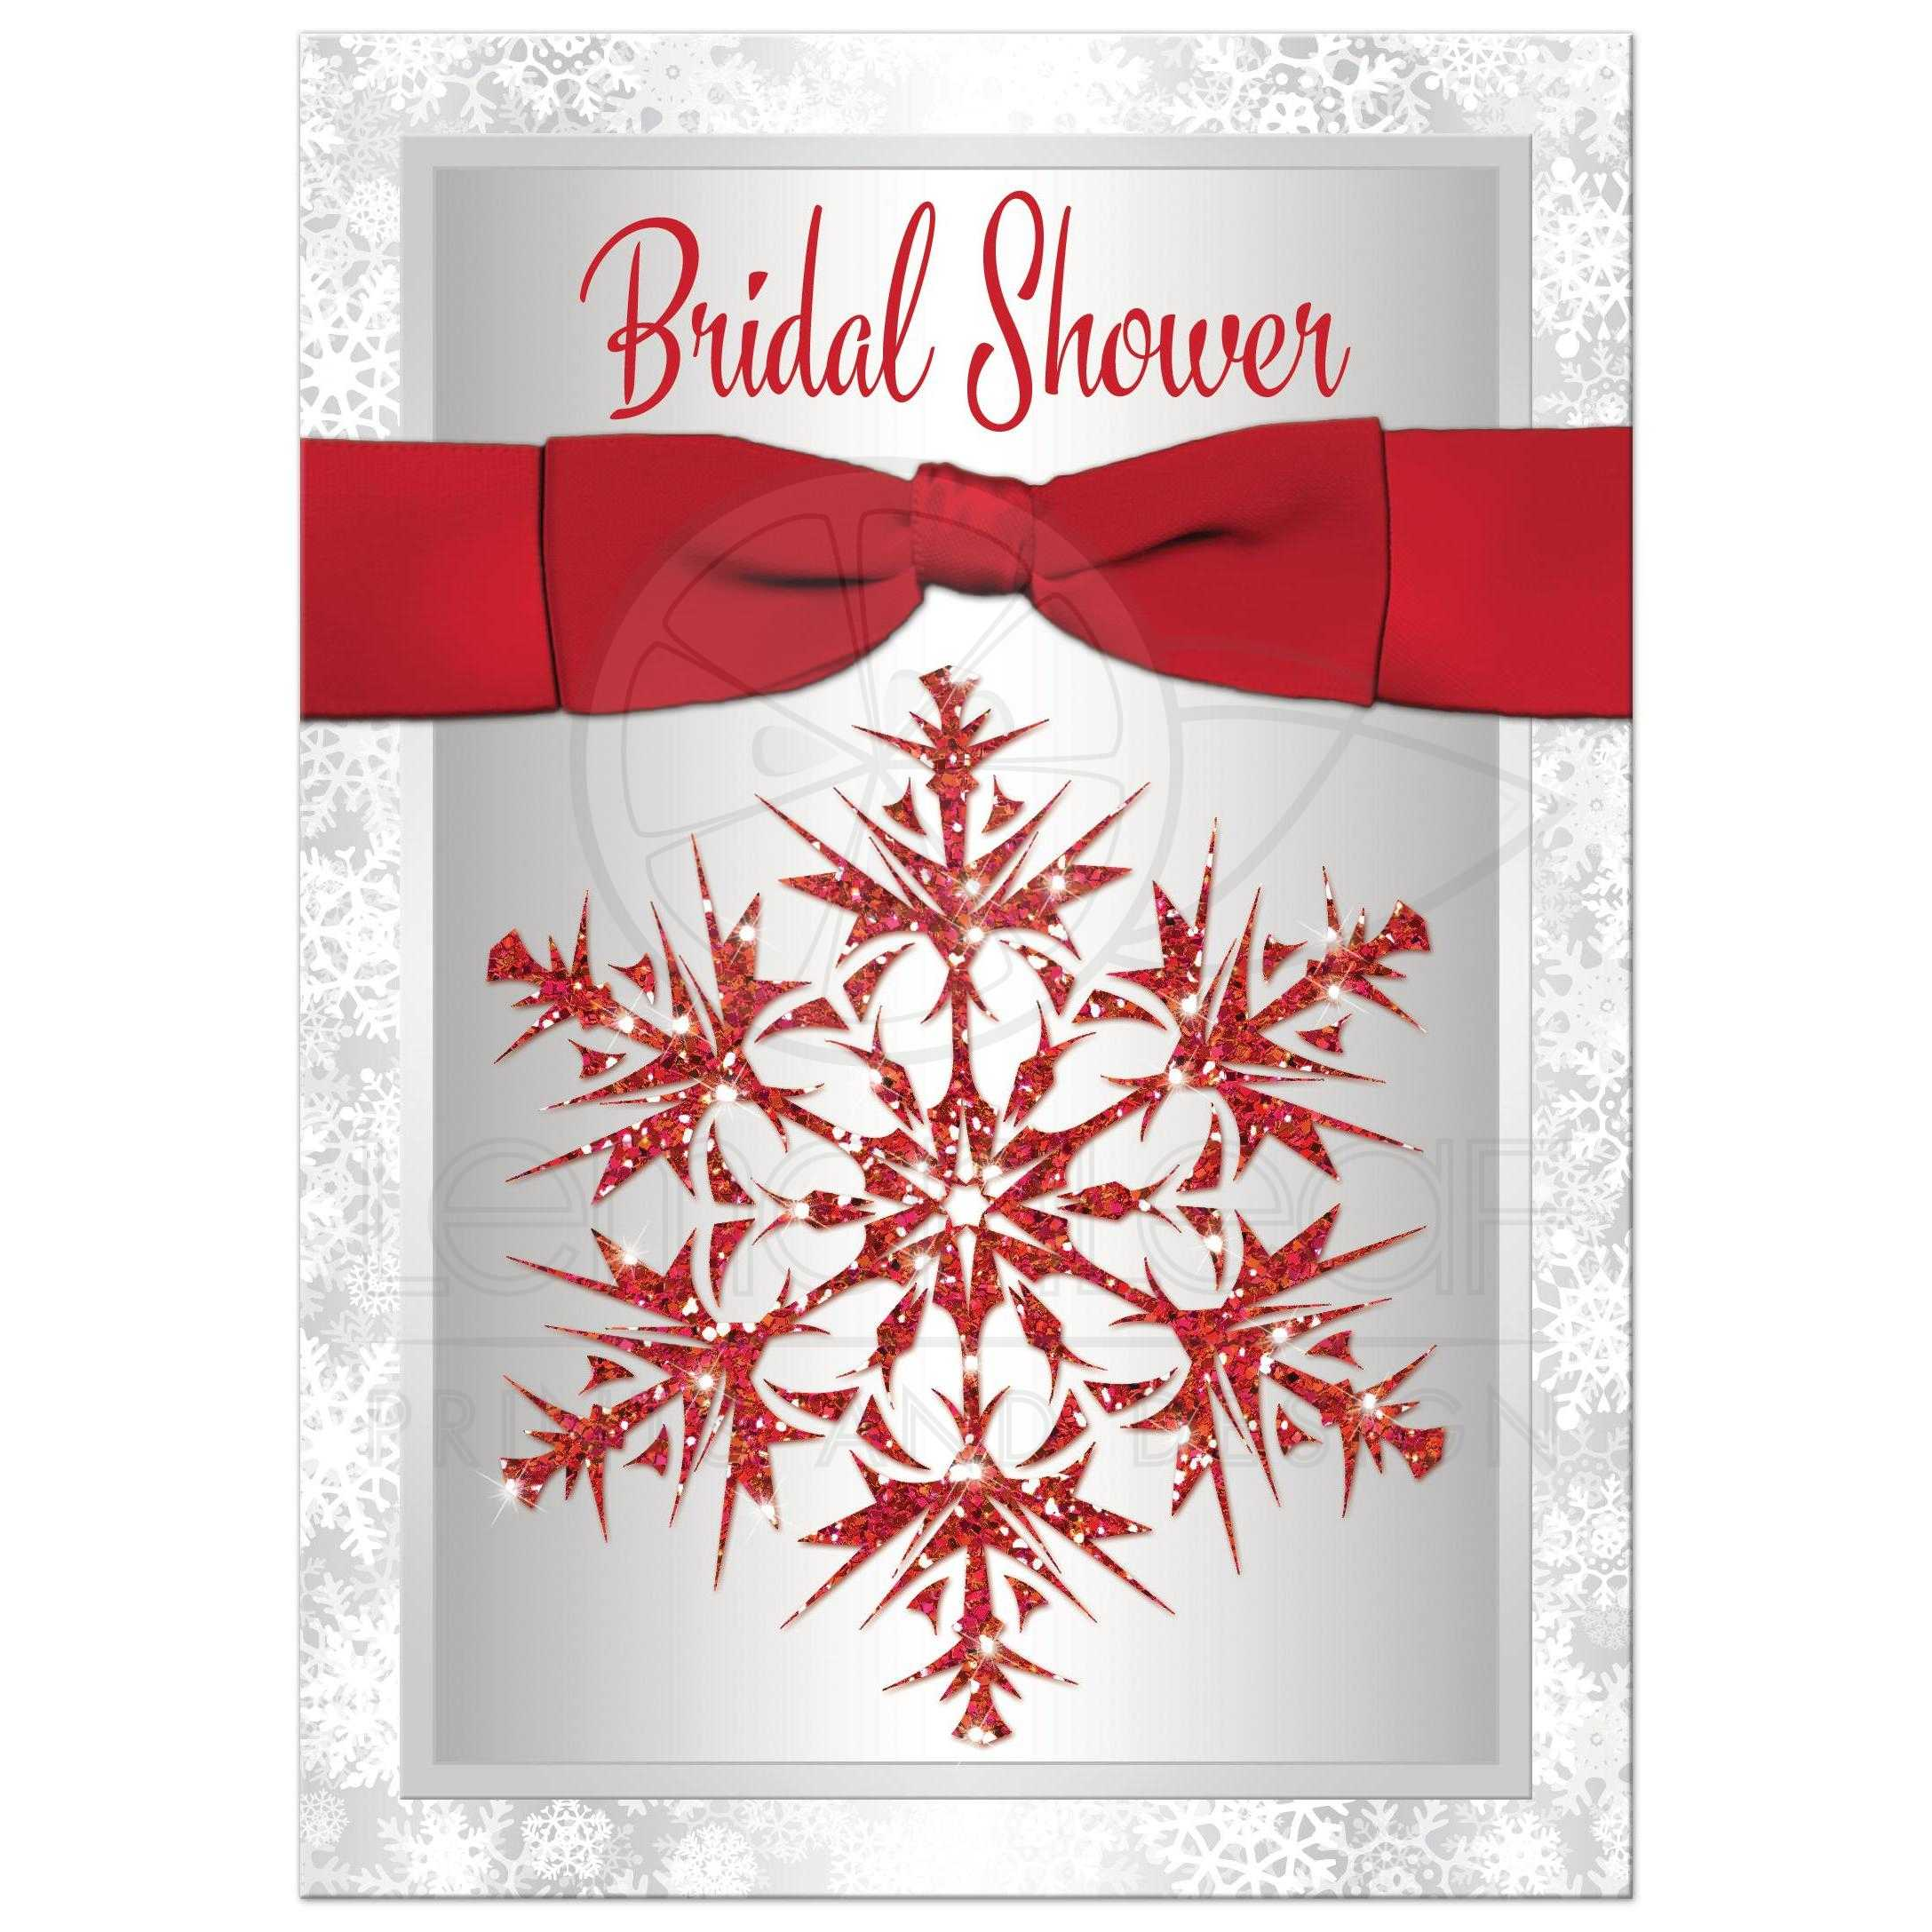 Bridal Shower Invitation | Red, Gray, White | Simulated Glitter ...